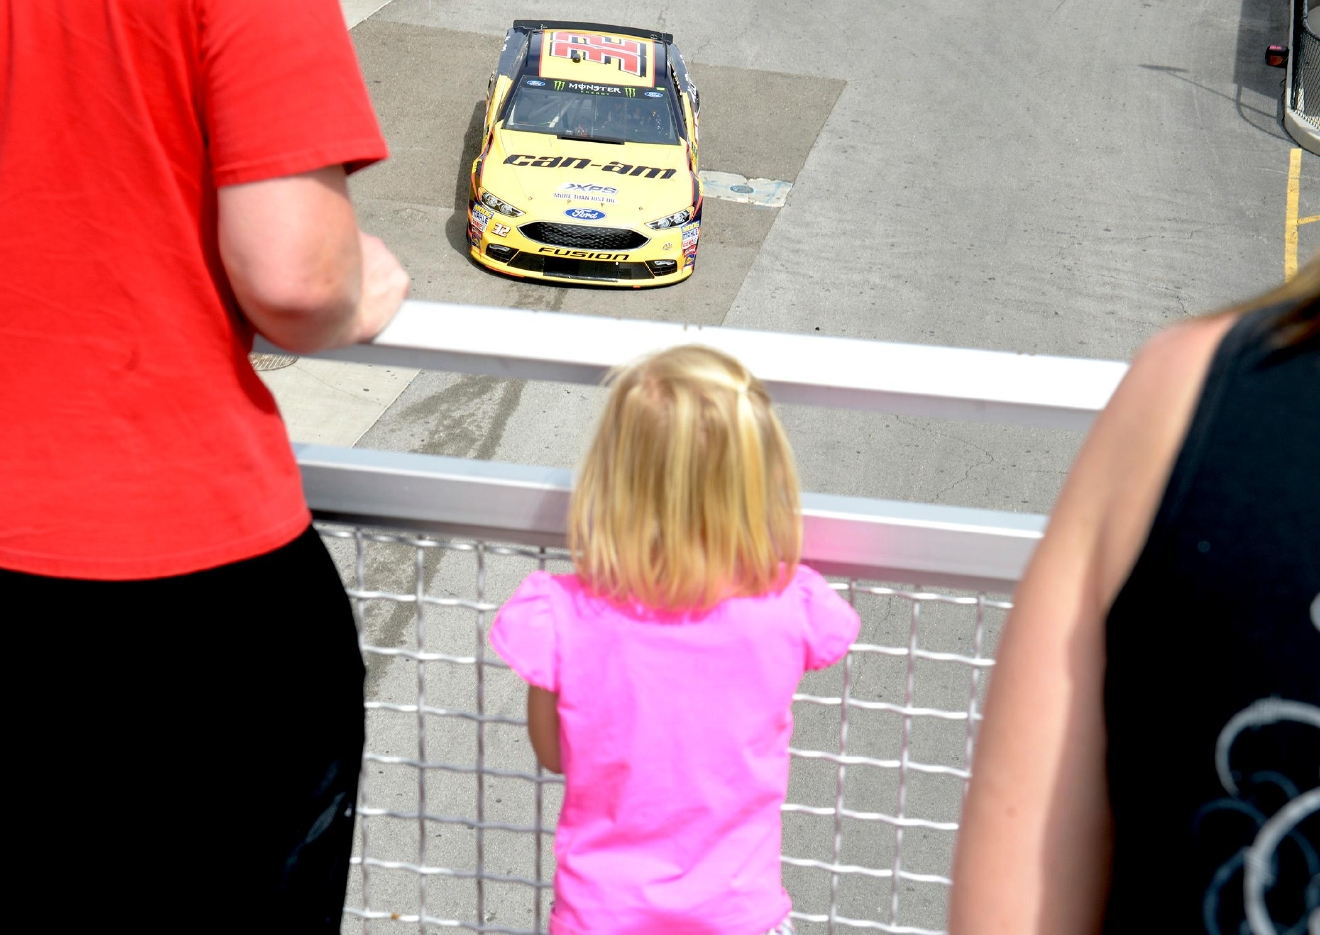 Little Hailey Mauker watches as Matt DiBenedetto's #32 passes under her on his way to the track during NASCAR Stratosphere Pole Day at Las Vegas Motor Speedway. Friday, March 10, 2017. (Glenn Pinkerton/Las Vegas News Bureau)